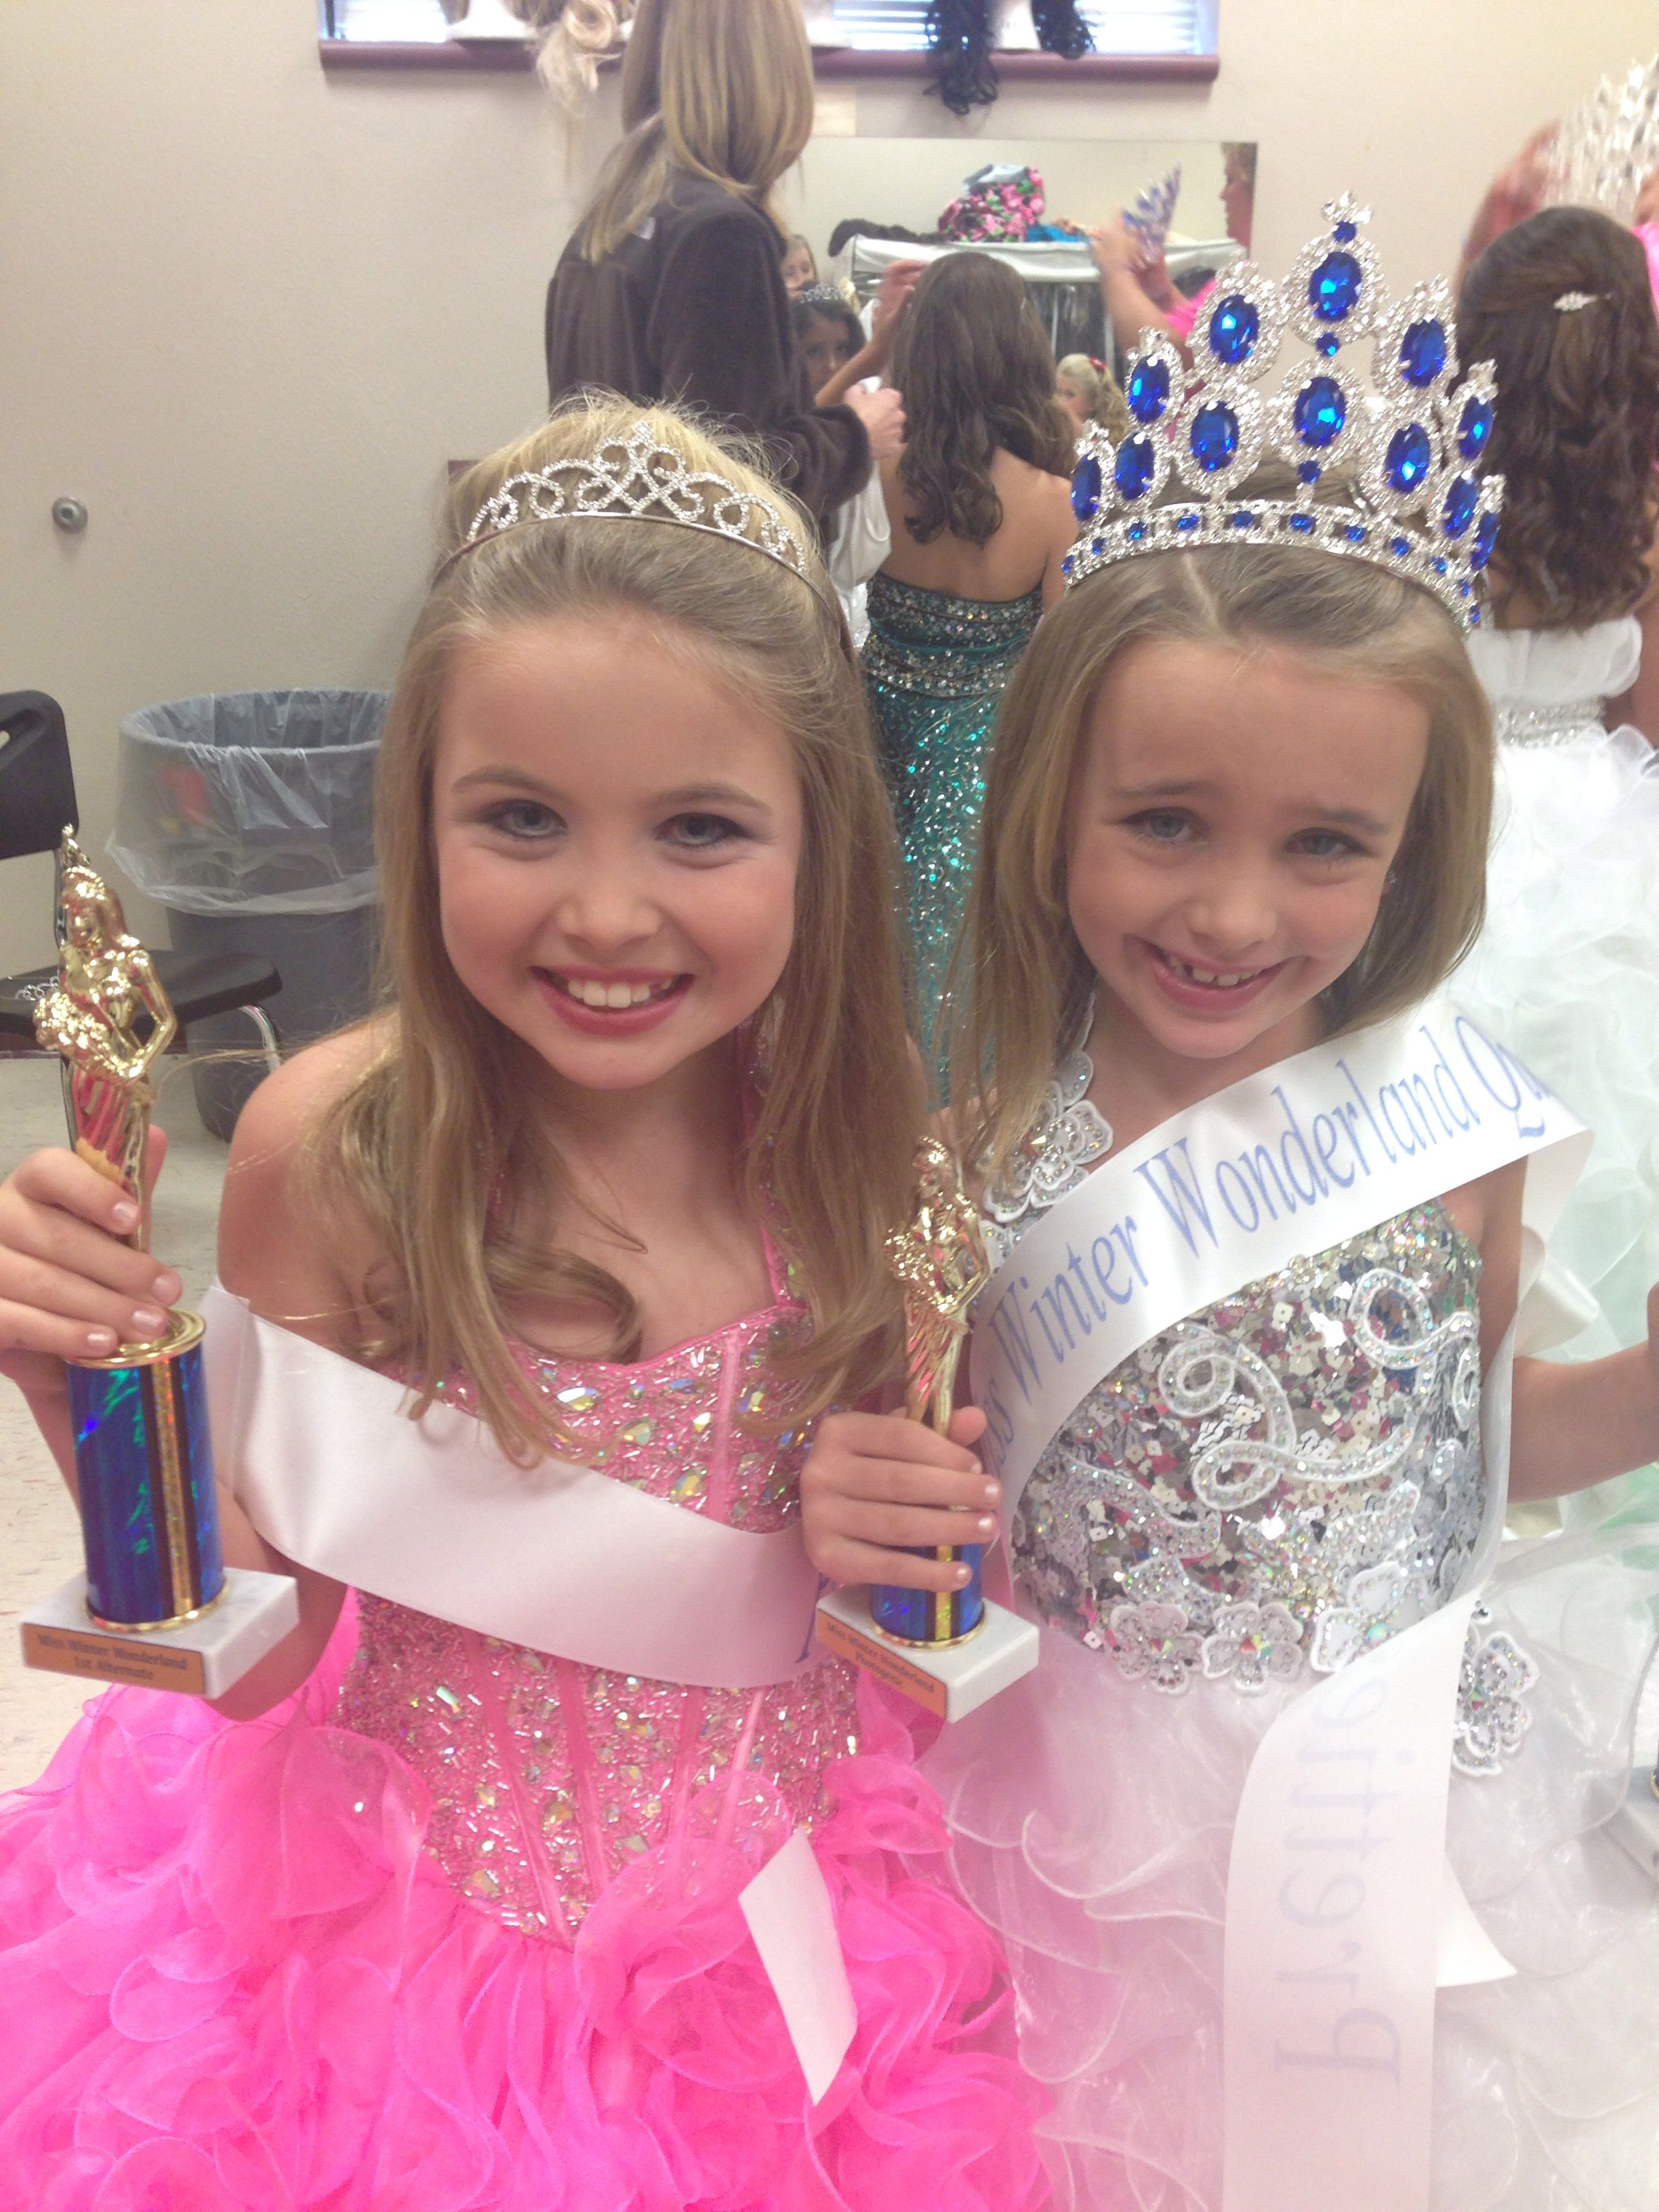 pageant makeup/hair for little girls | my makeup/hair